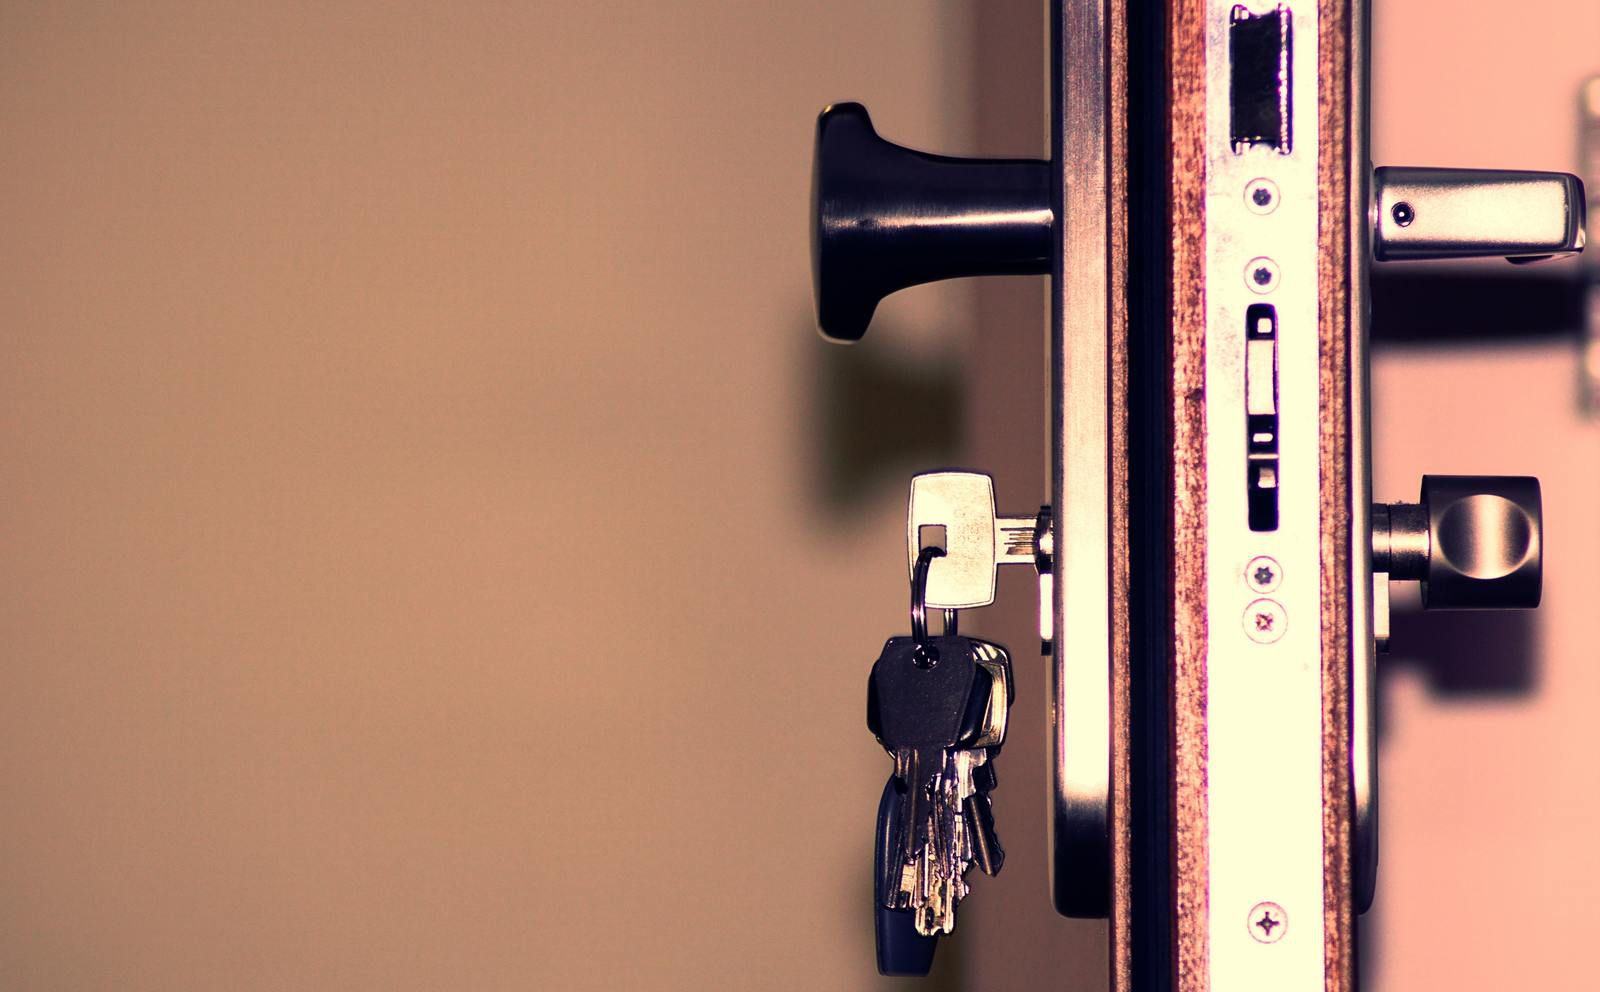 Why Should We Provide the Best Security System in Our Property?